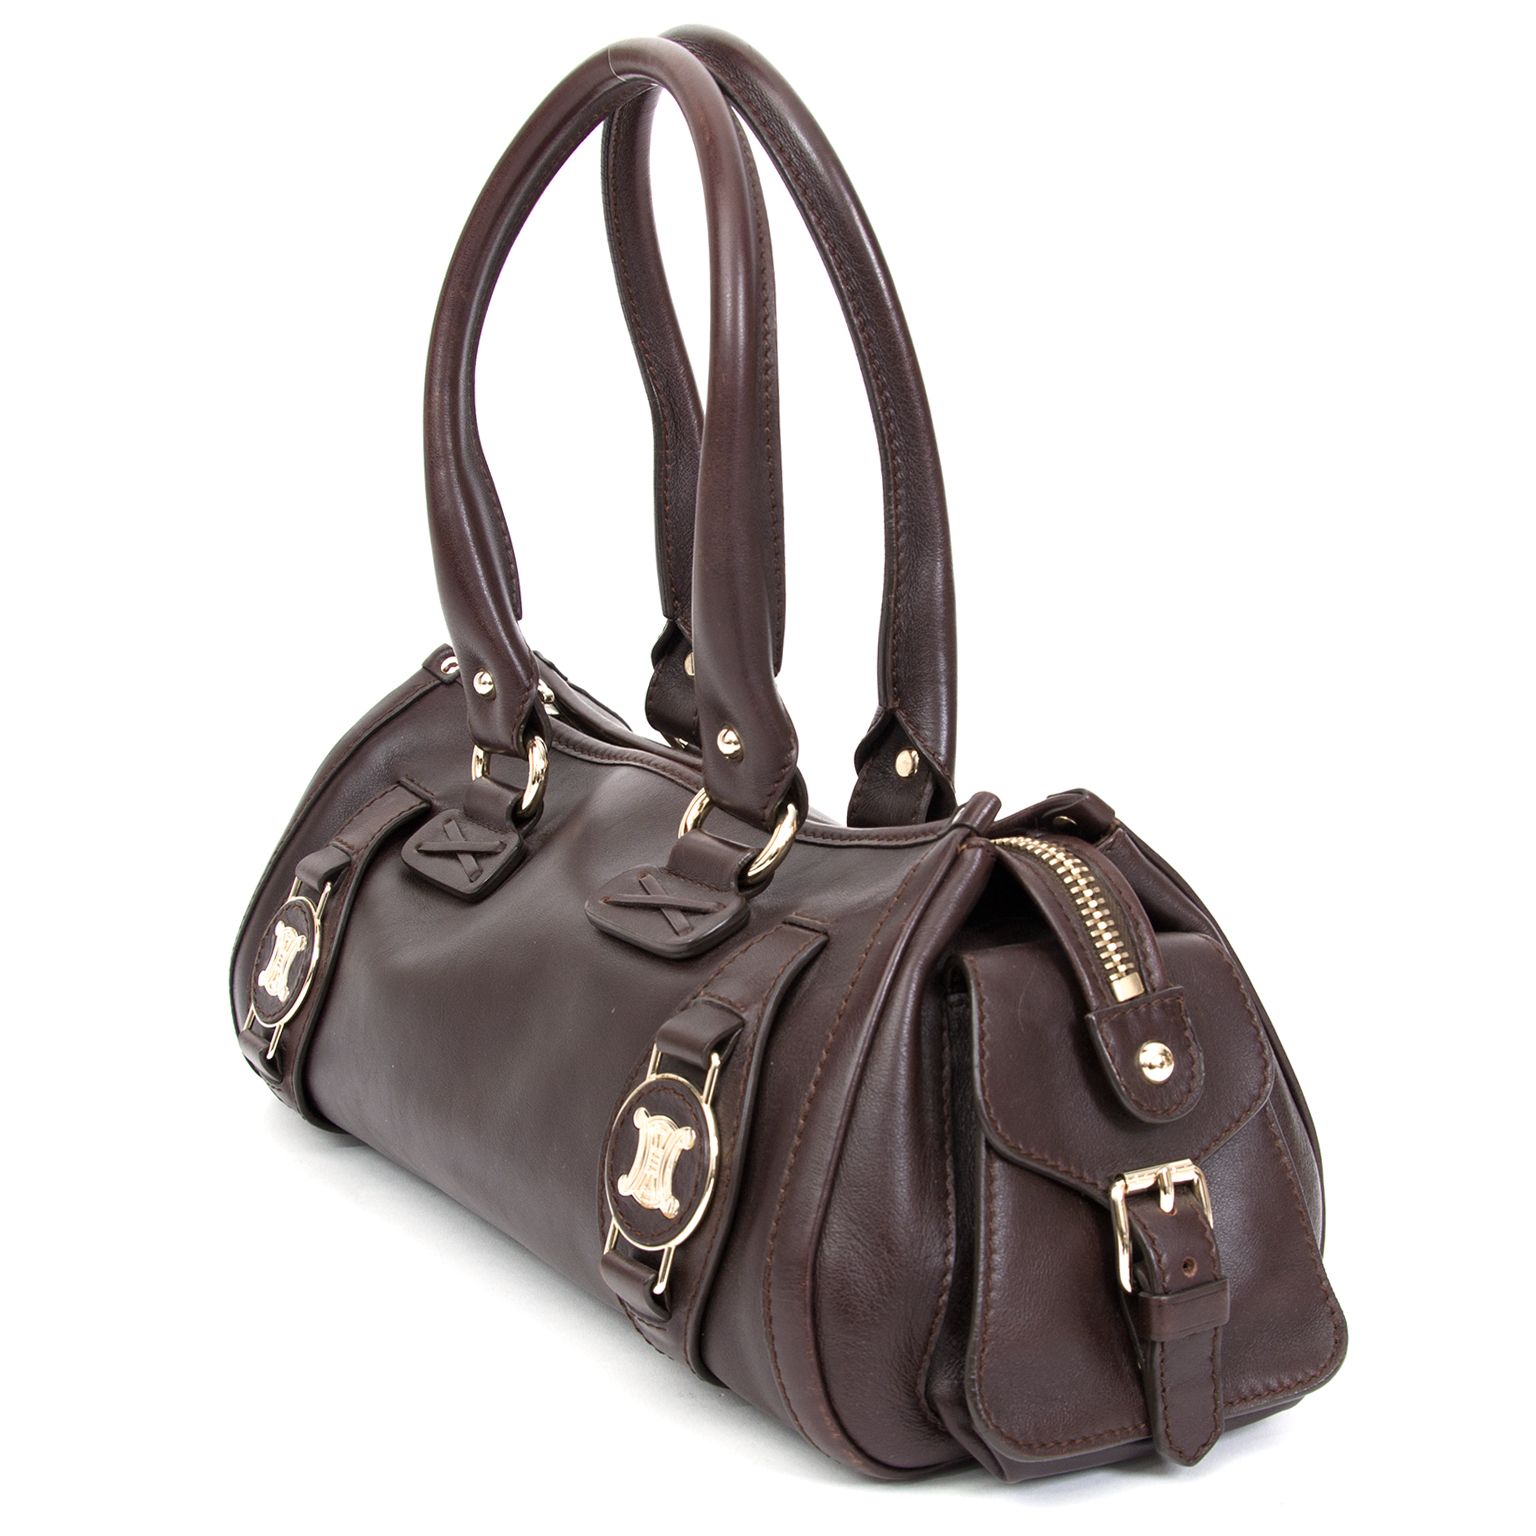 a860742afc4a ... Preowned Céline Oxblood Cilinder Bag. Buy authentic secondhand Céline  bags at the right price at